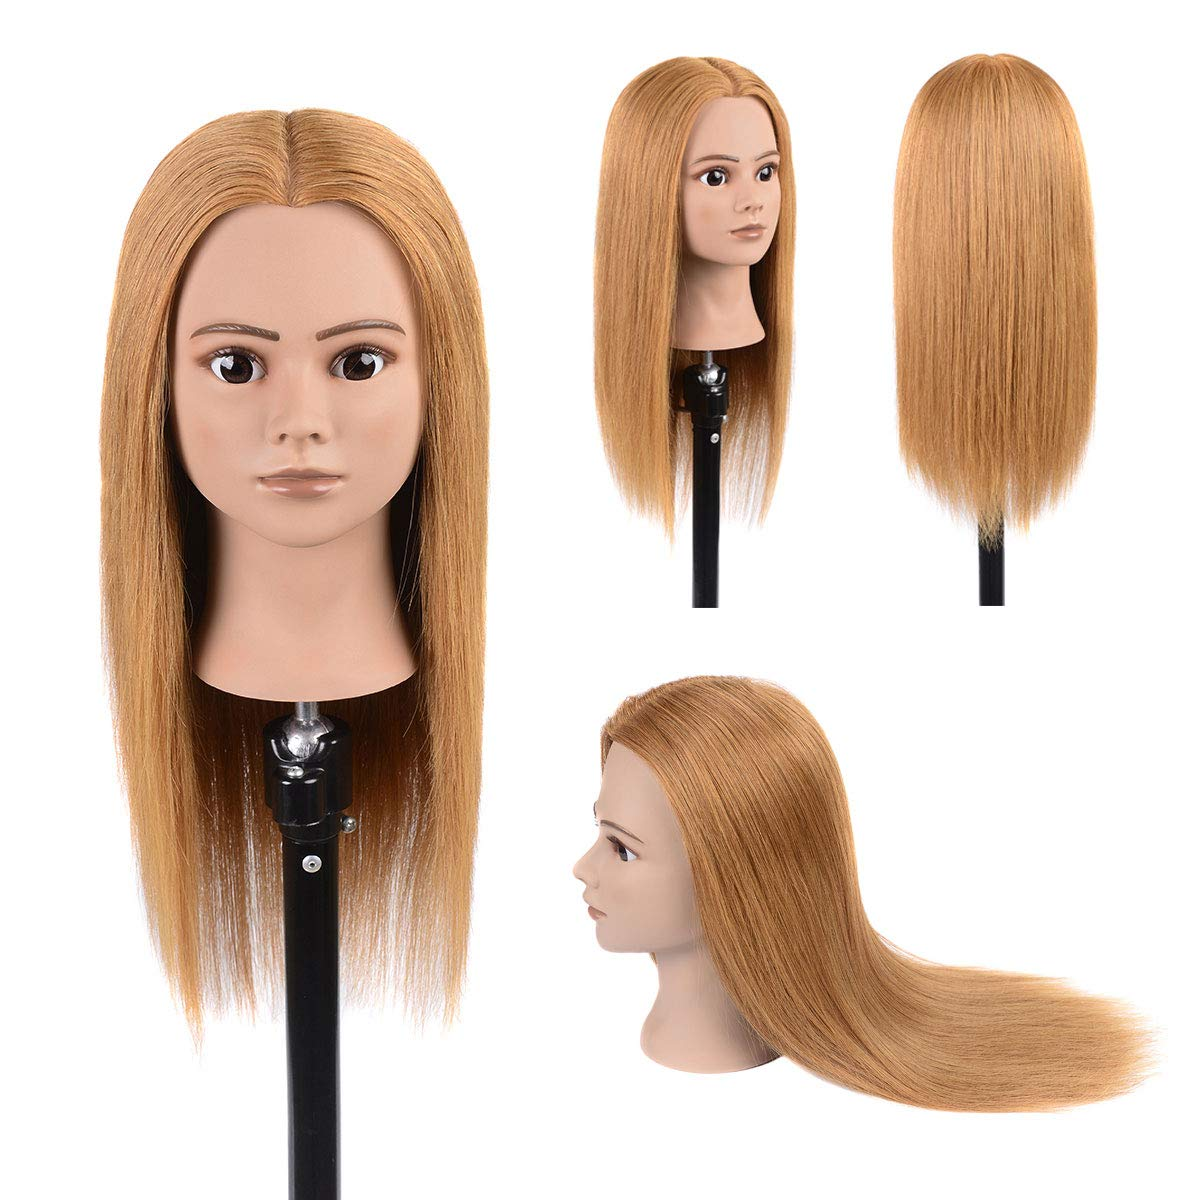 Amazon Com Practice Salon Mannequin Head 100 Human Hair Dummy Doll Head Human Hair Hairdressing Training Head Model With Clamp Stand Light Blonde 20 22 From Forehead To The Back Hair End Beauty